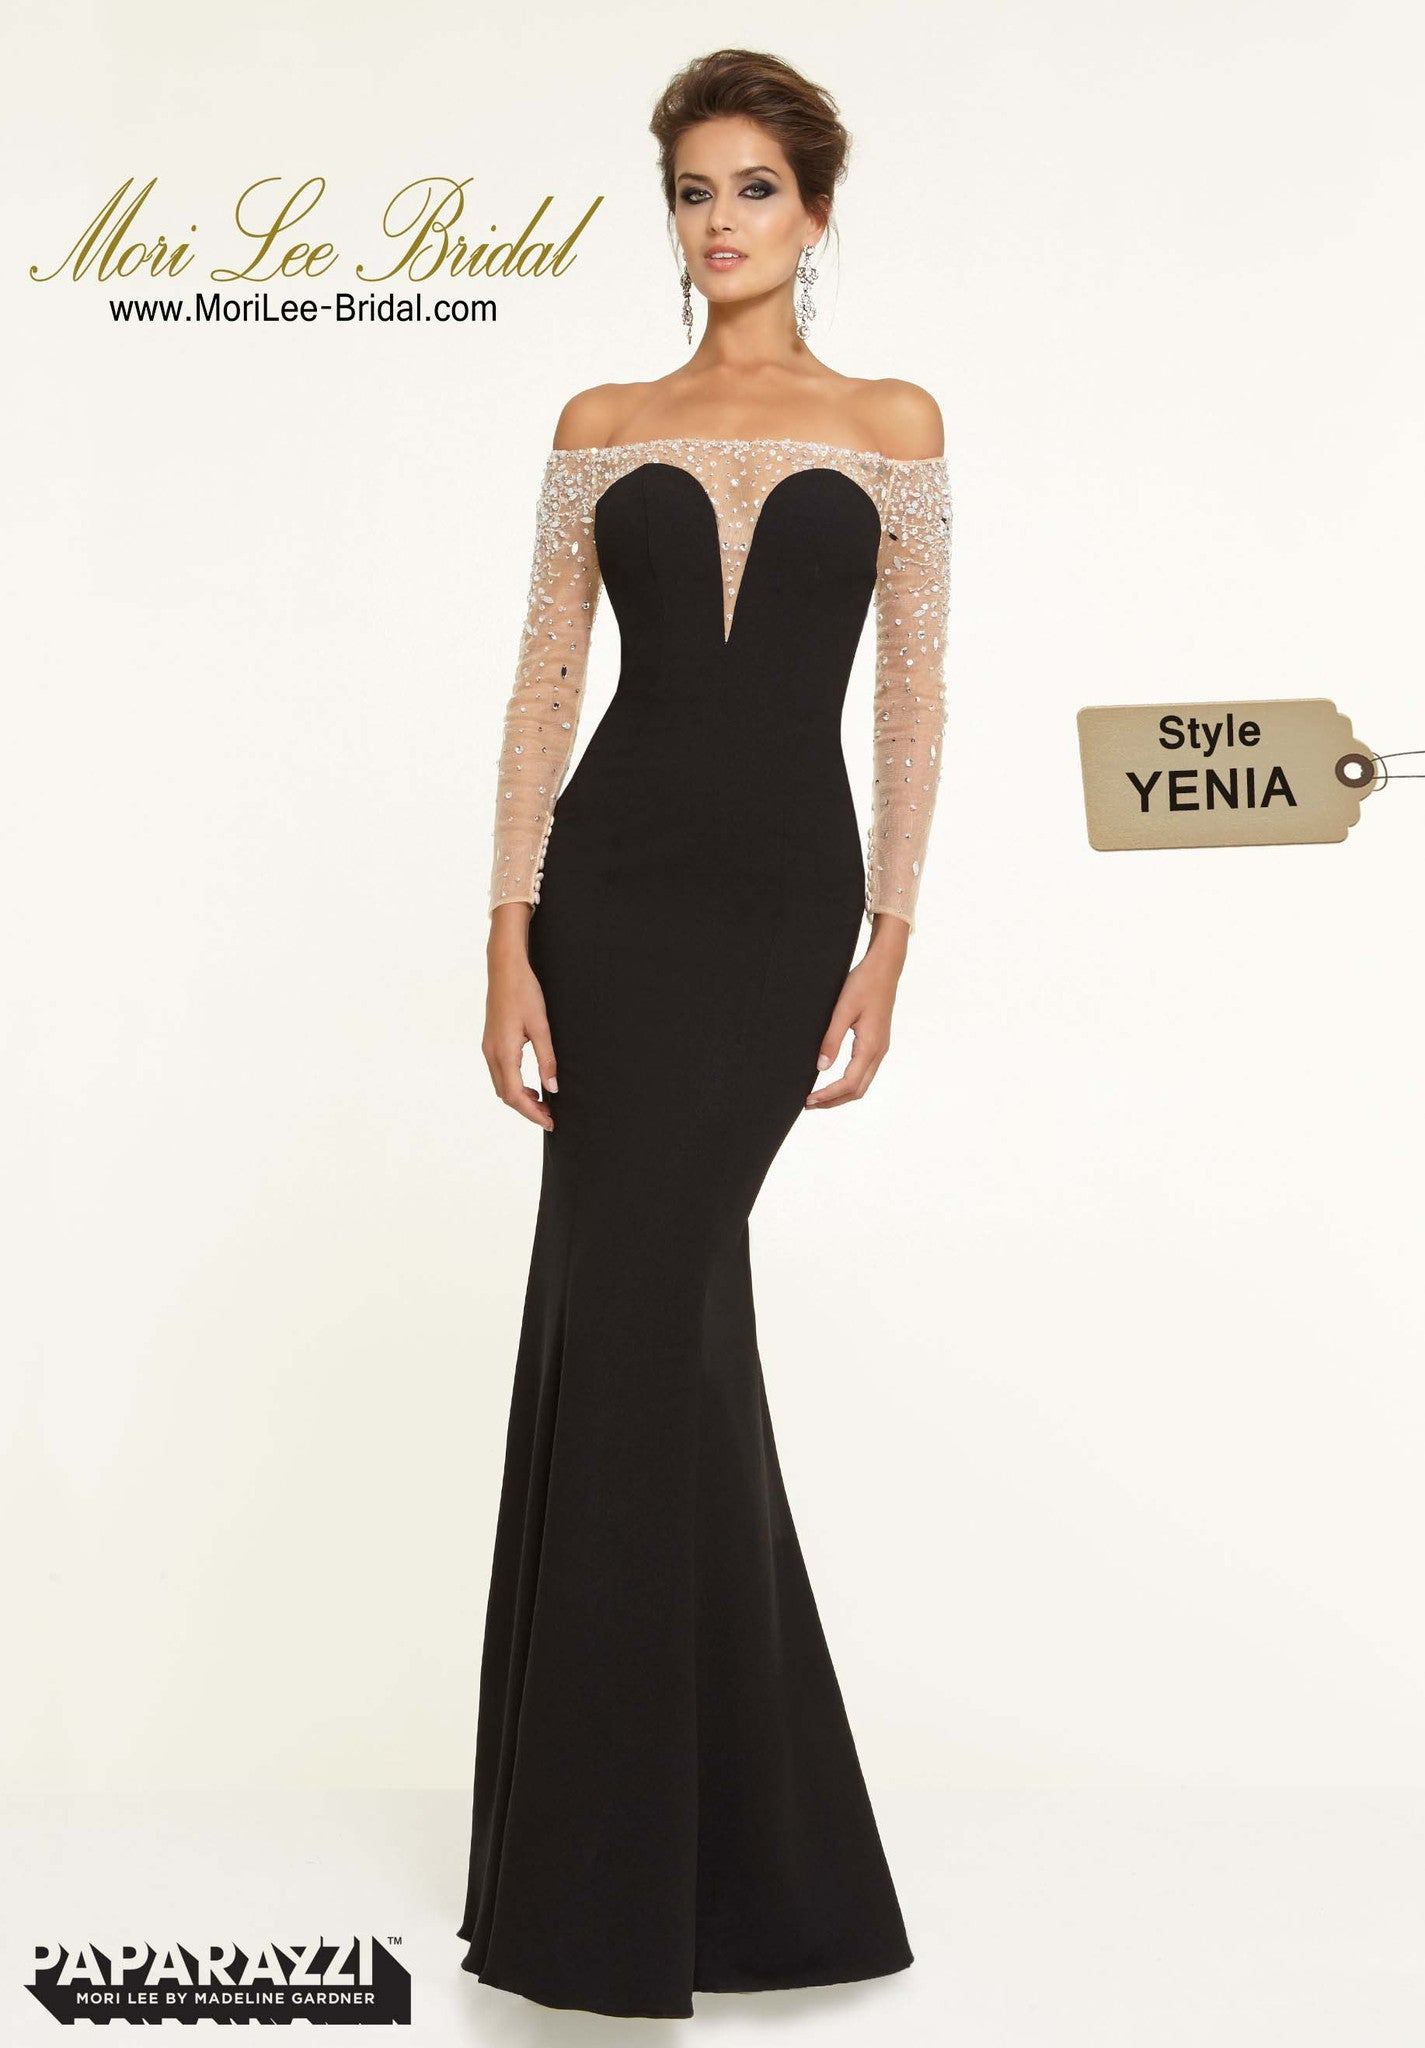 YENIA* - Mori Lee Bridal